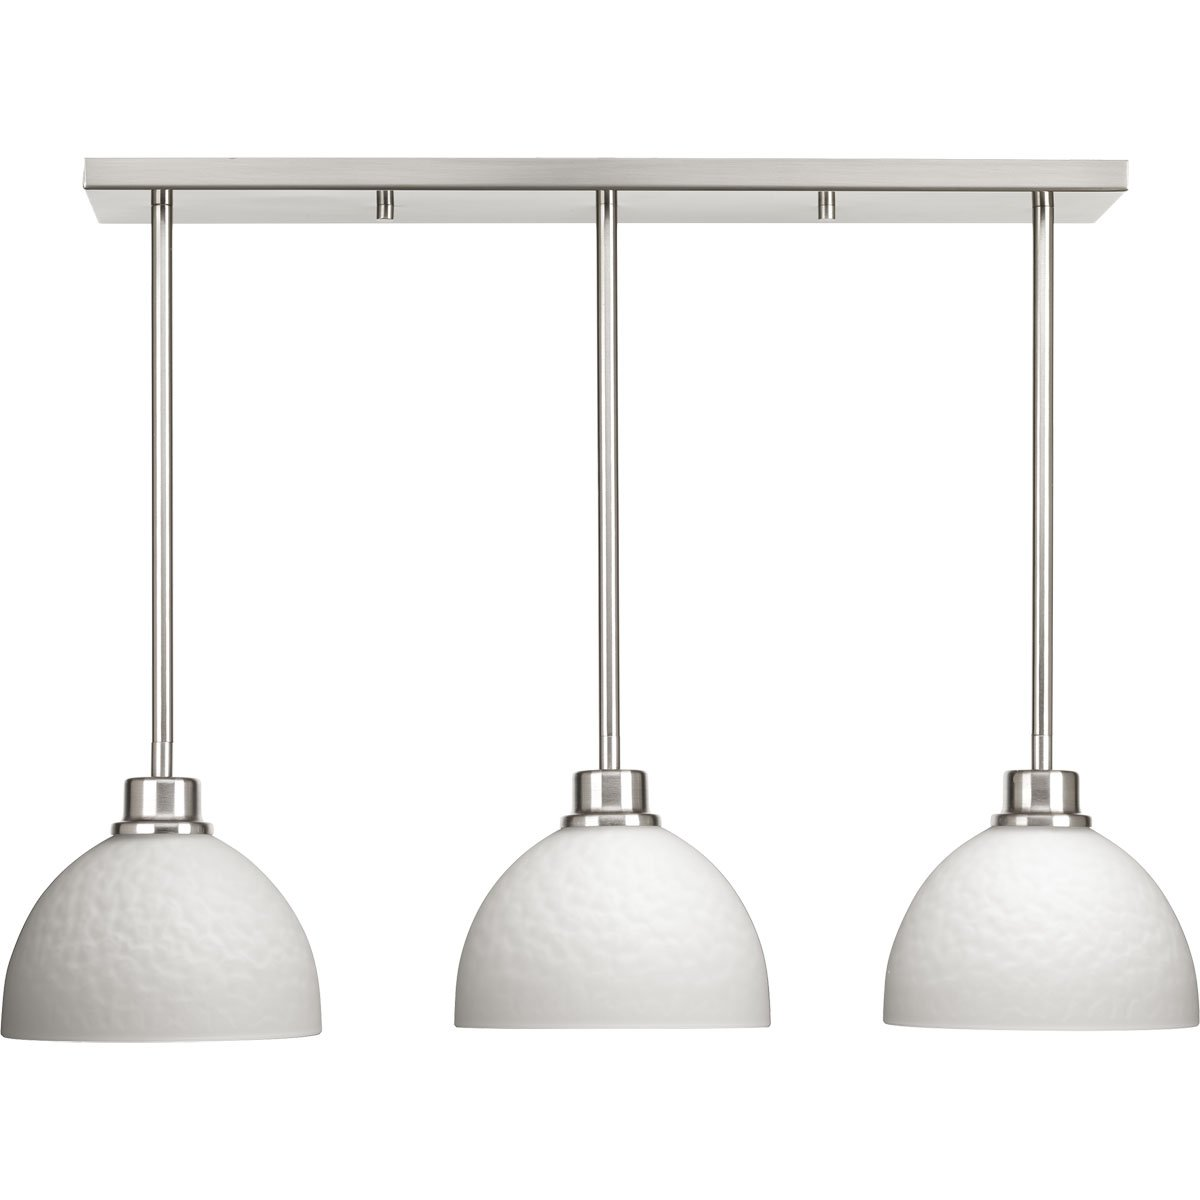 Progress Lighting P8404-09 Traditional/Casual Canopy Accessory, Brushed Nickel by Progress Lighting (Image #6)